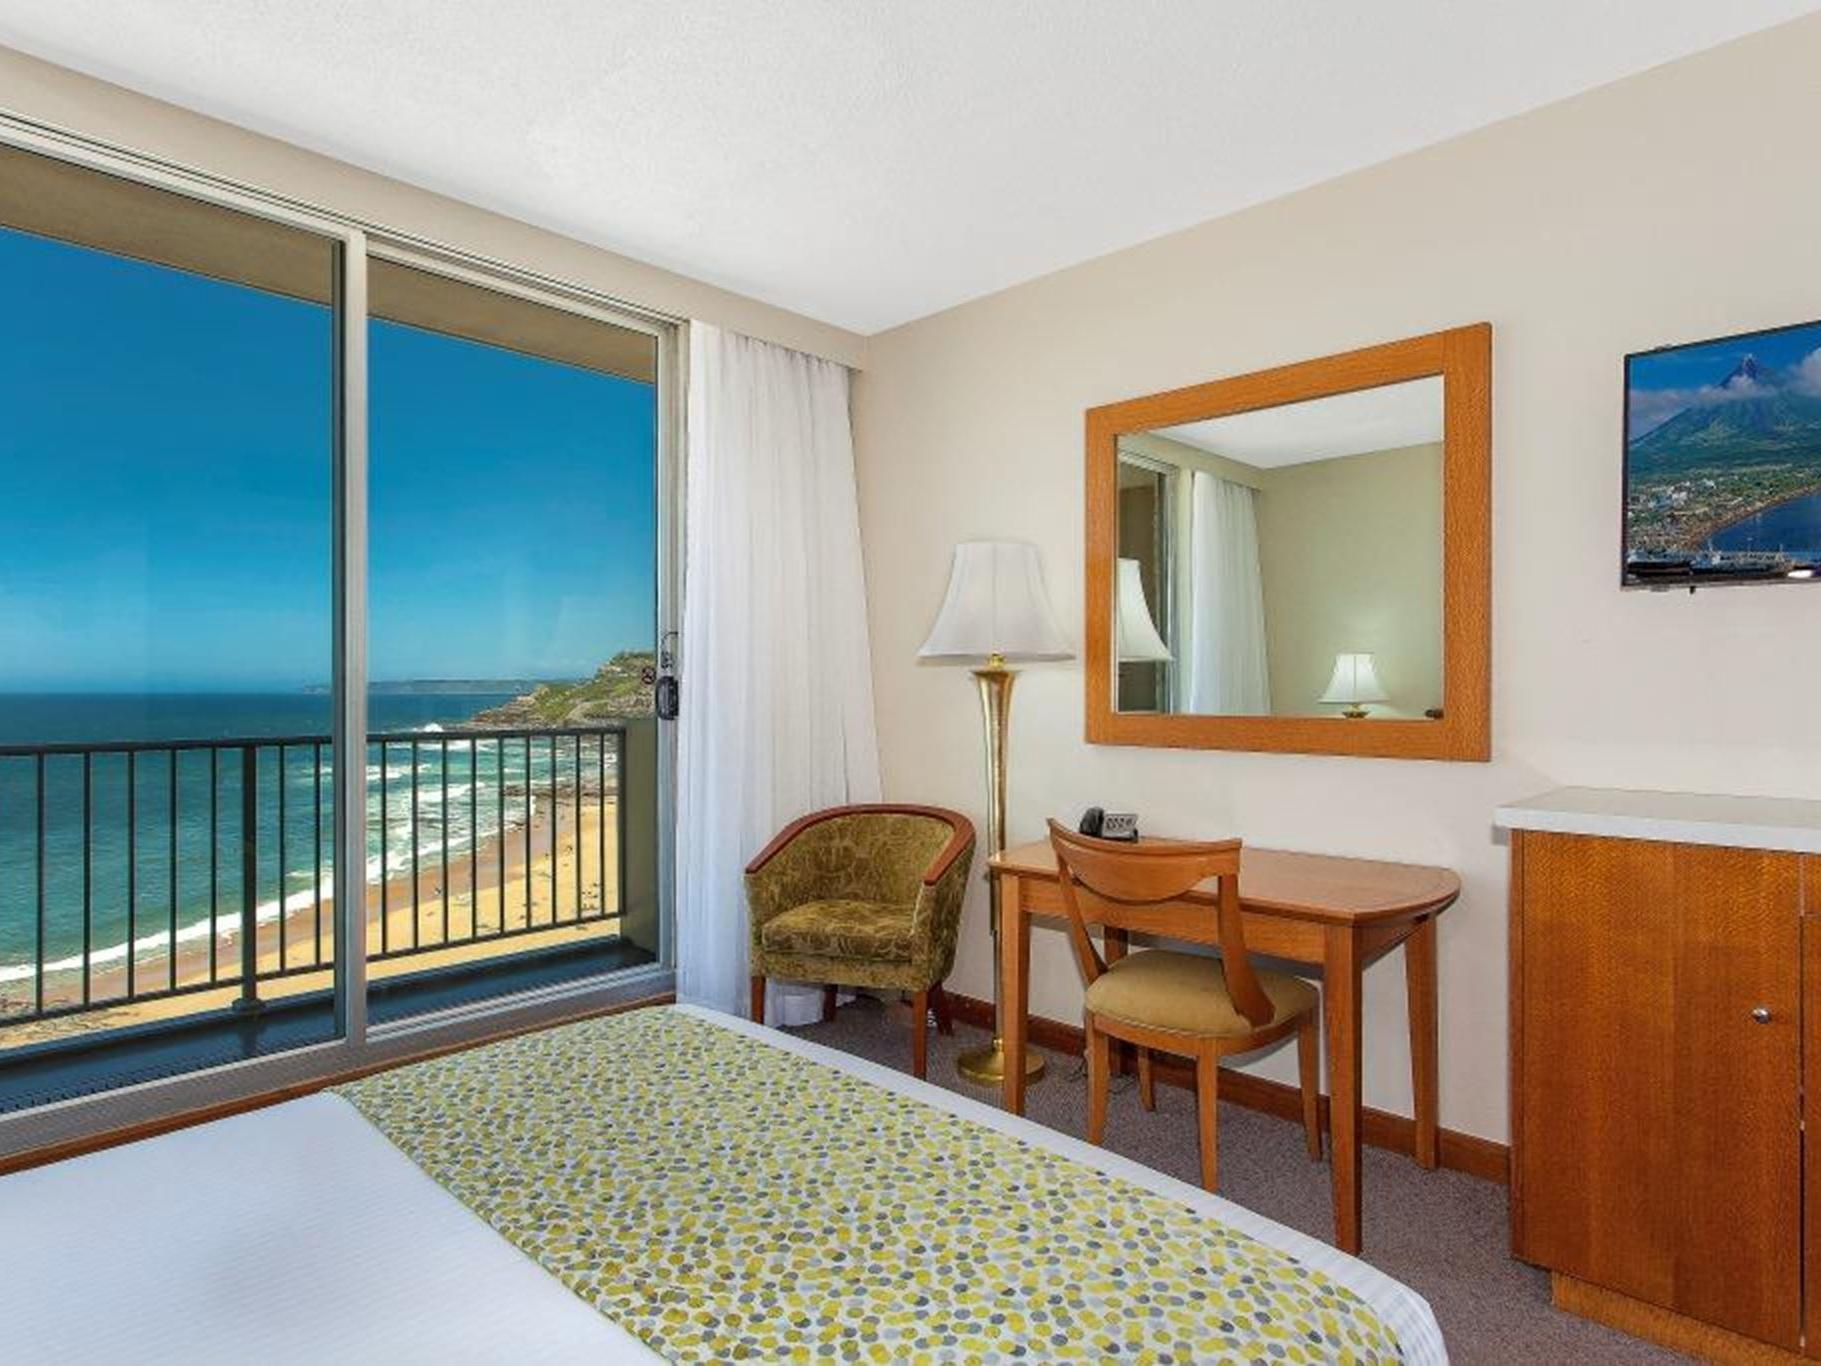 hotel room with balcony and vanity area